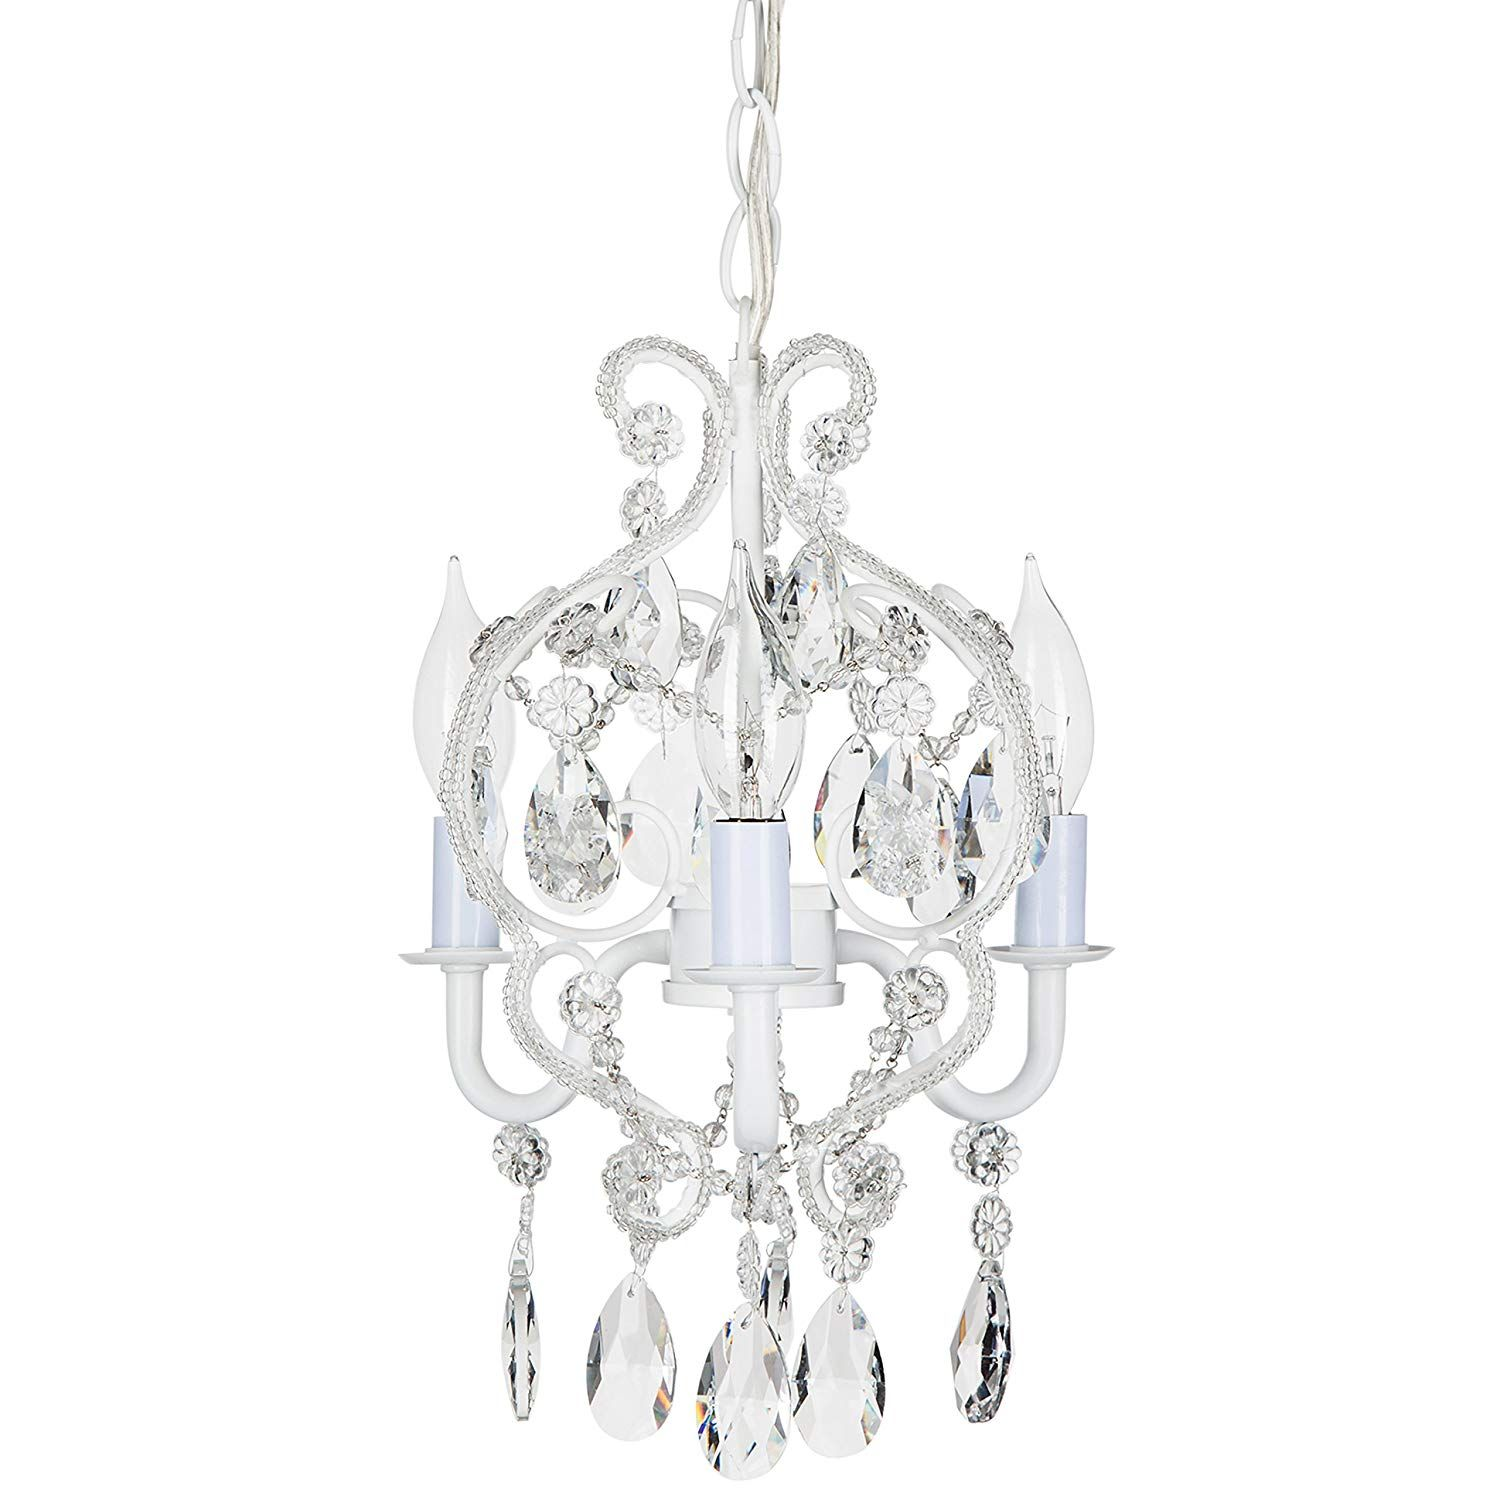 Amalfi Decor 5 Light LED Crystal Beaded Chandelier, Mini